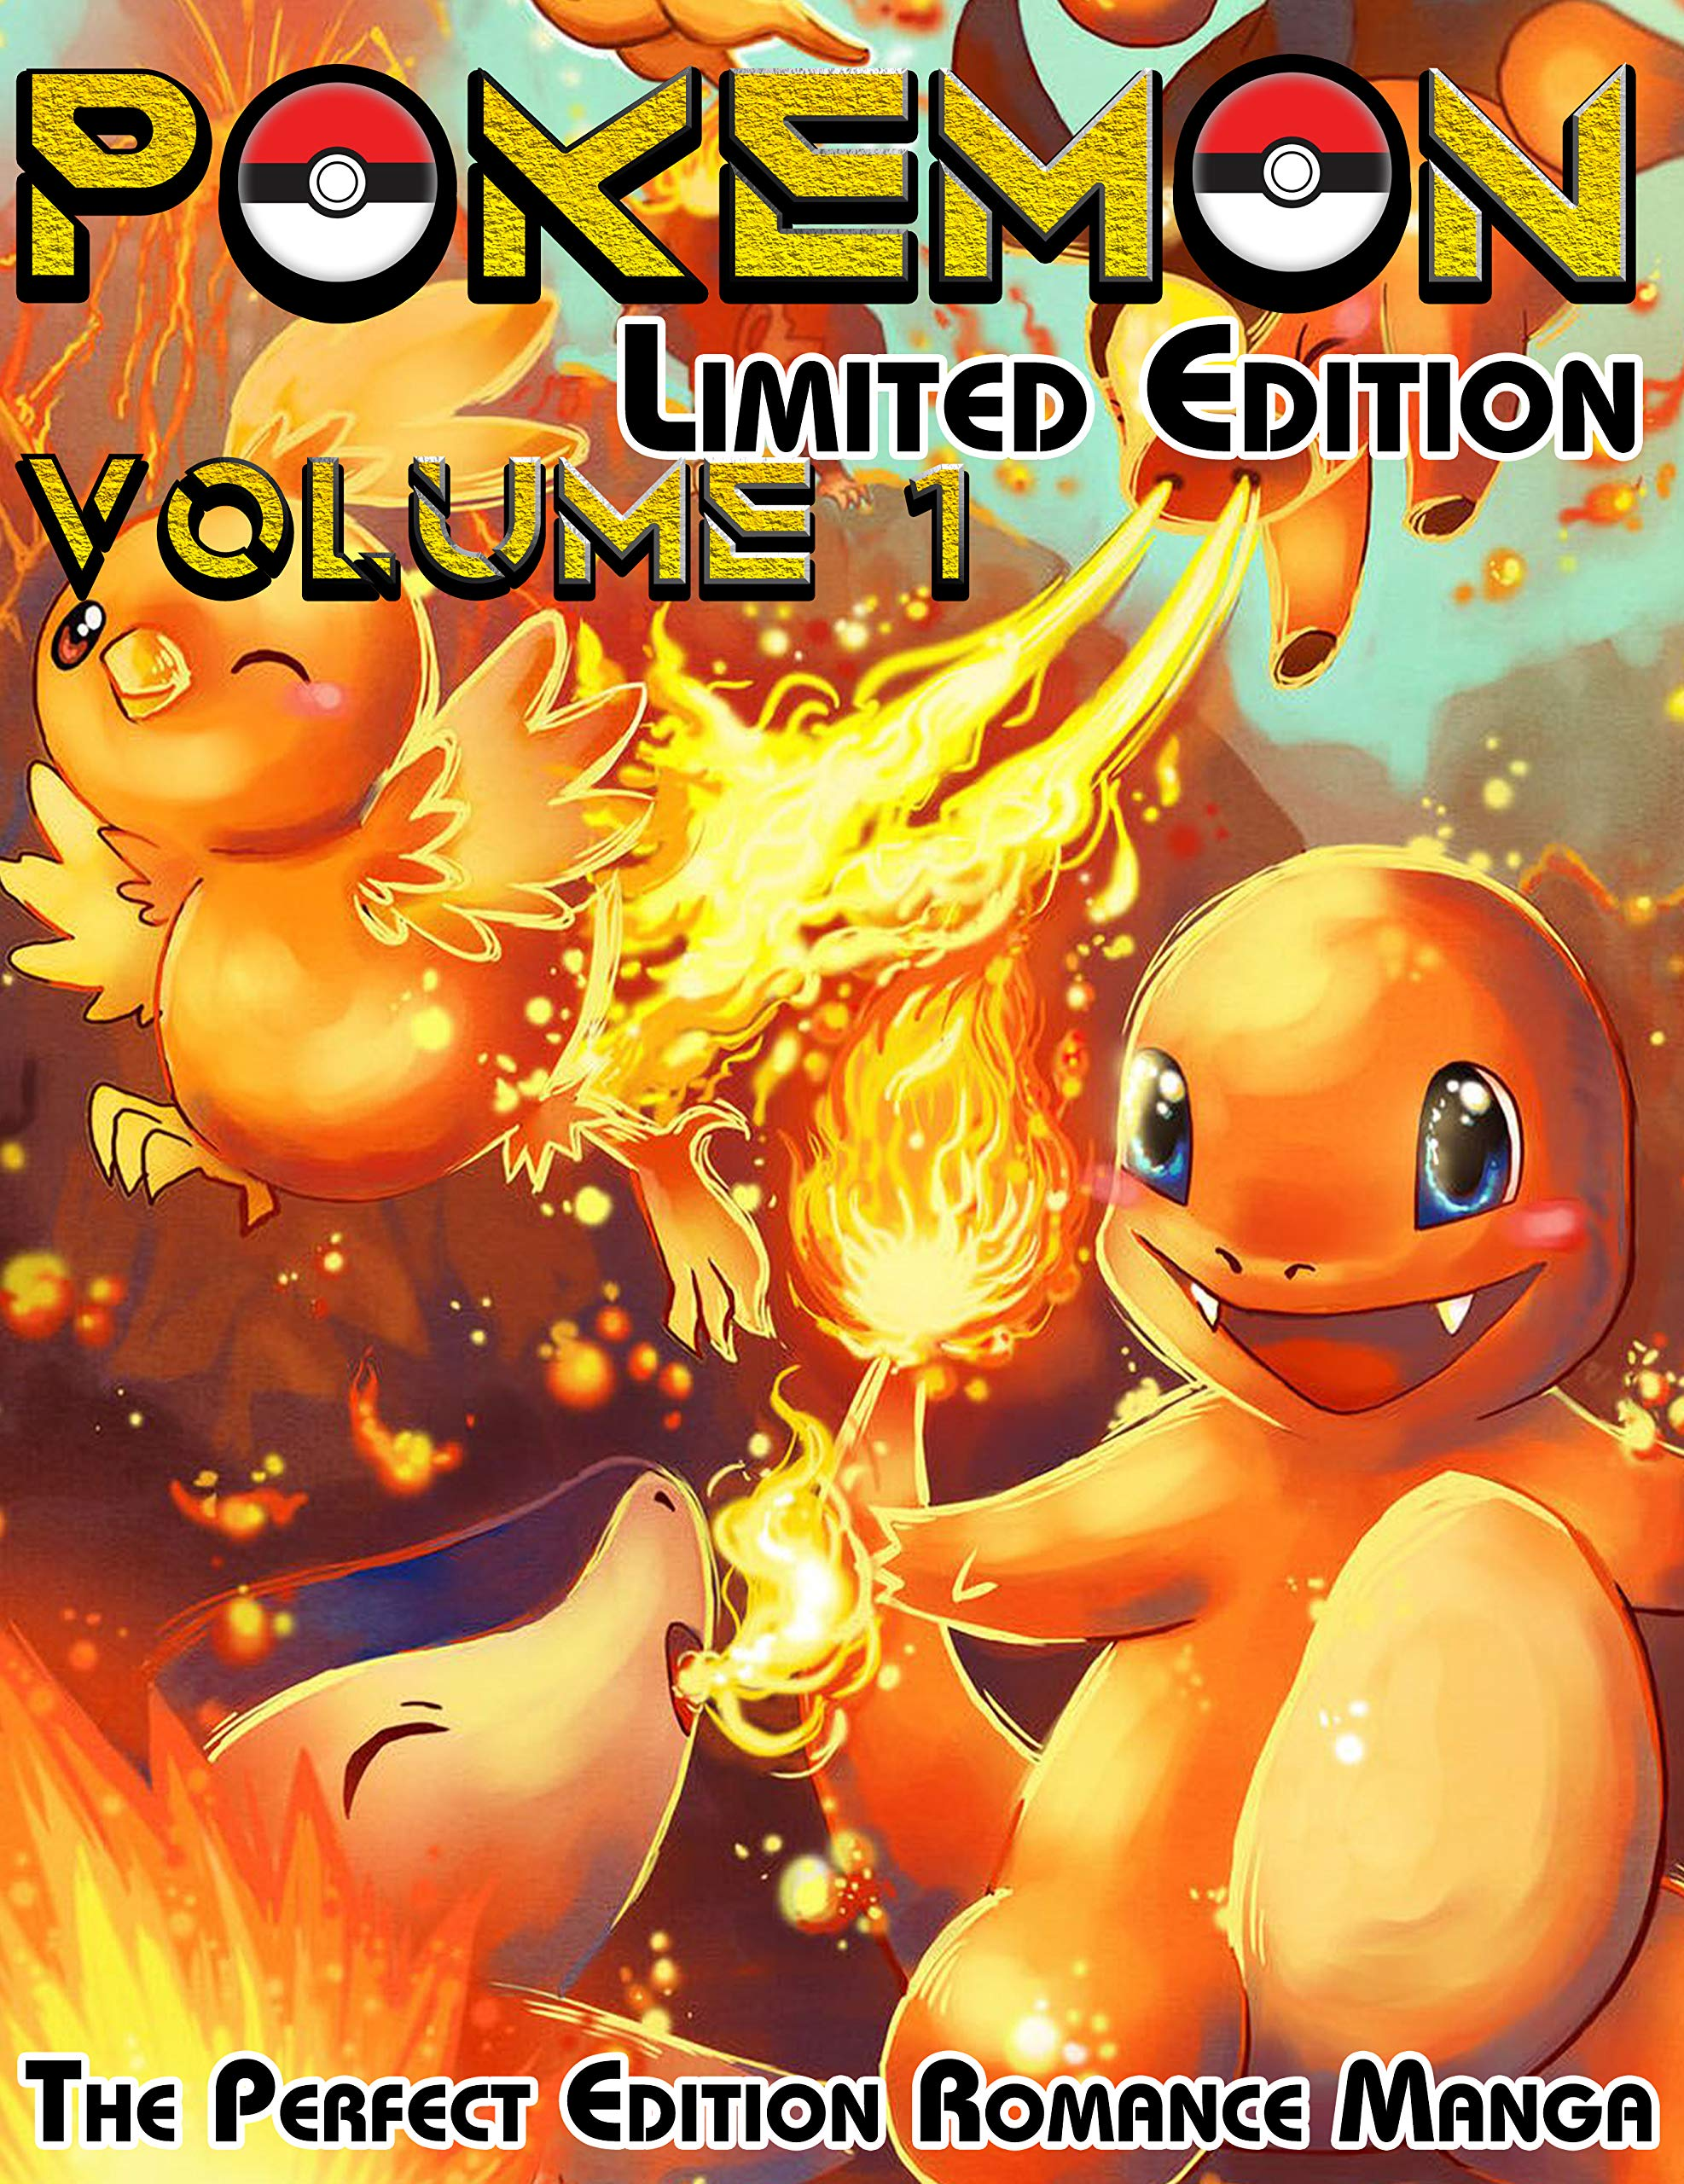 The Perfect Edition Romance Manga Pokemon Limited Edition: Complete Series Pokemon Volume 1